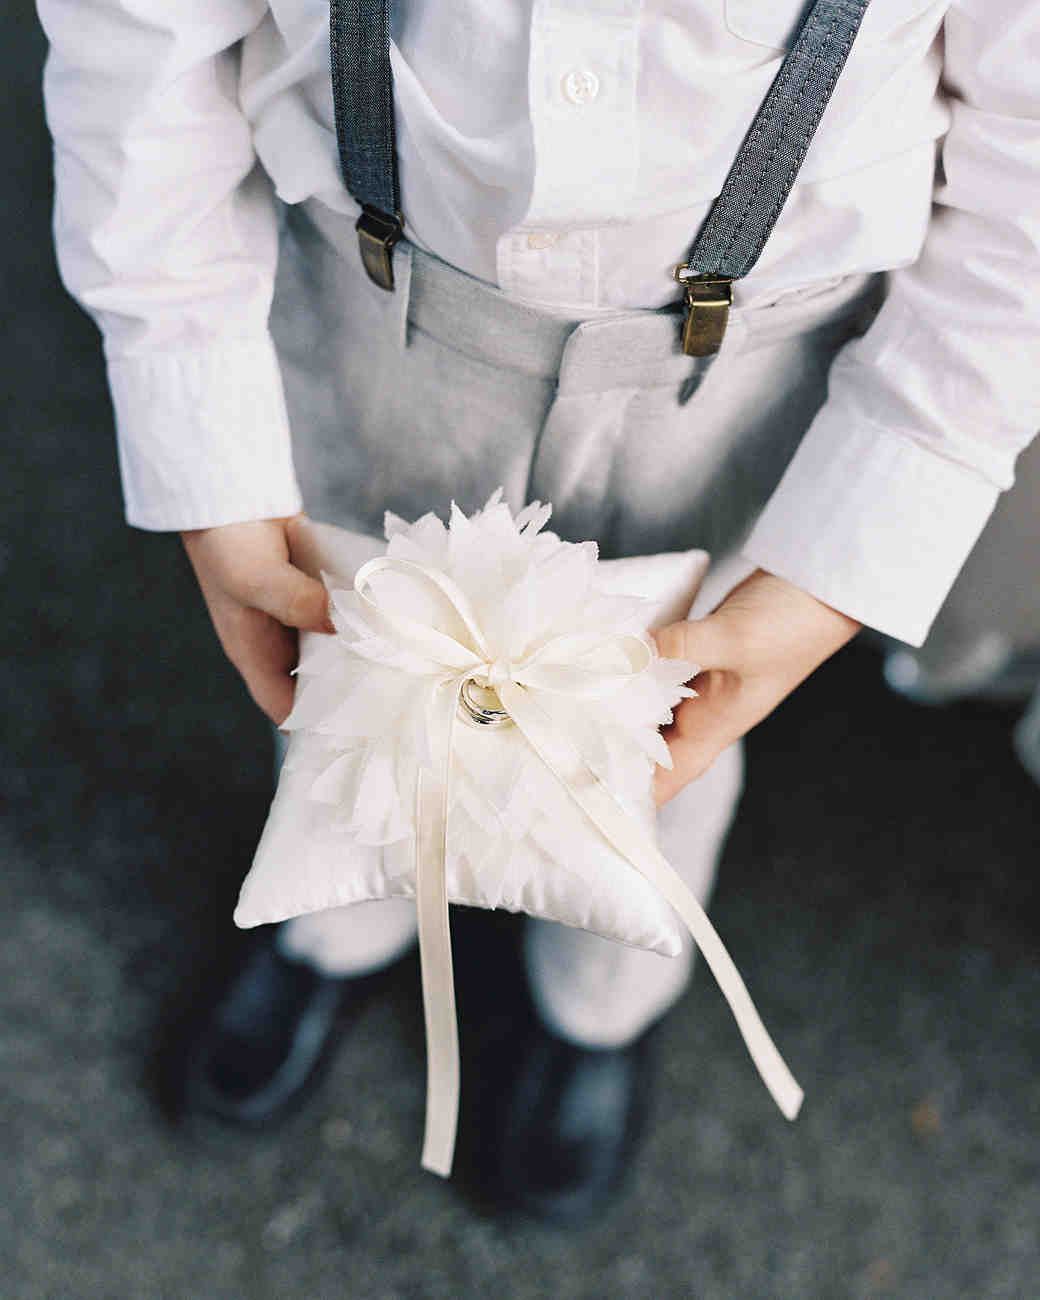 ring bearer holding pillow with large white flower